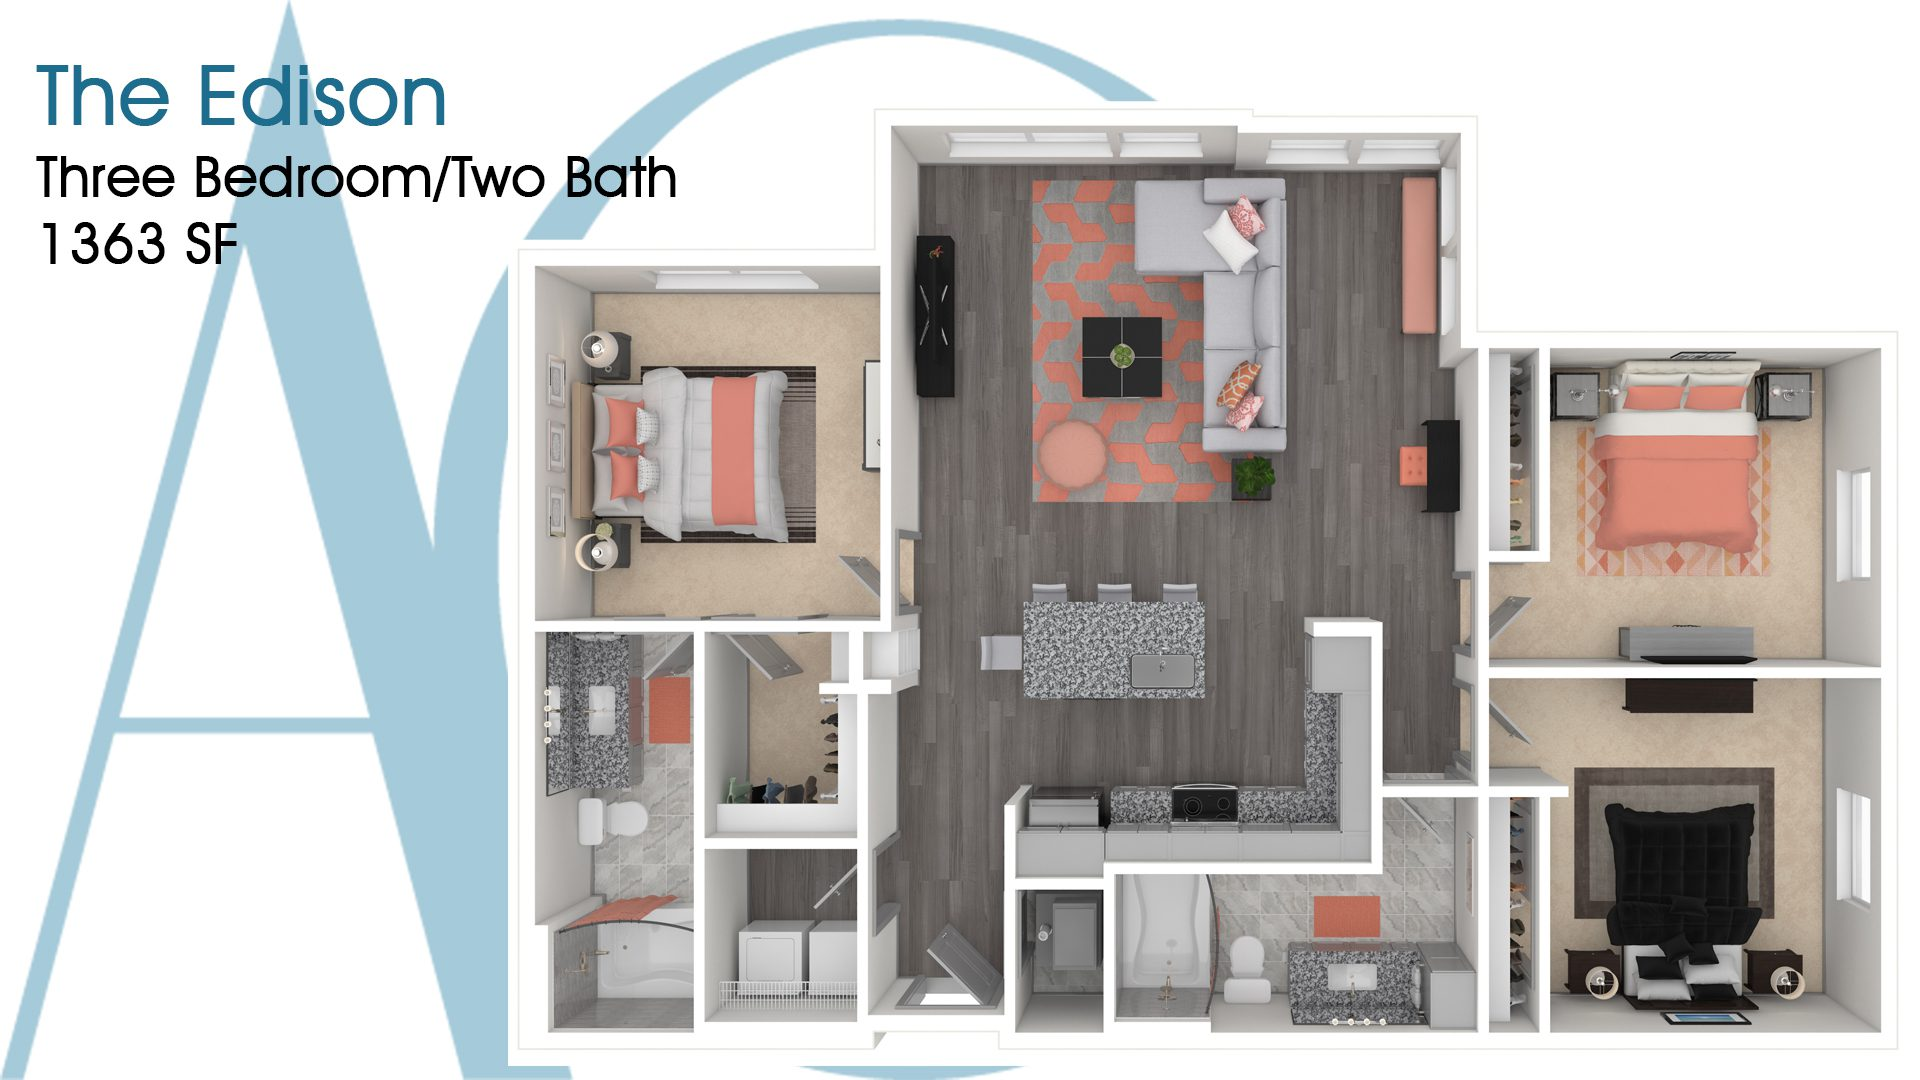 The Edison—Three-Bedroom/Two-Bath Apartment—1363 SQ. FT.